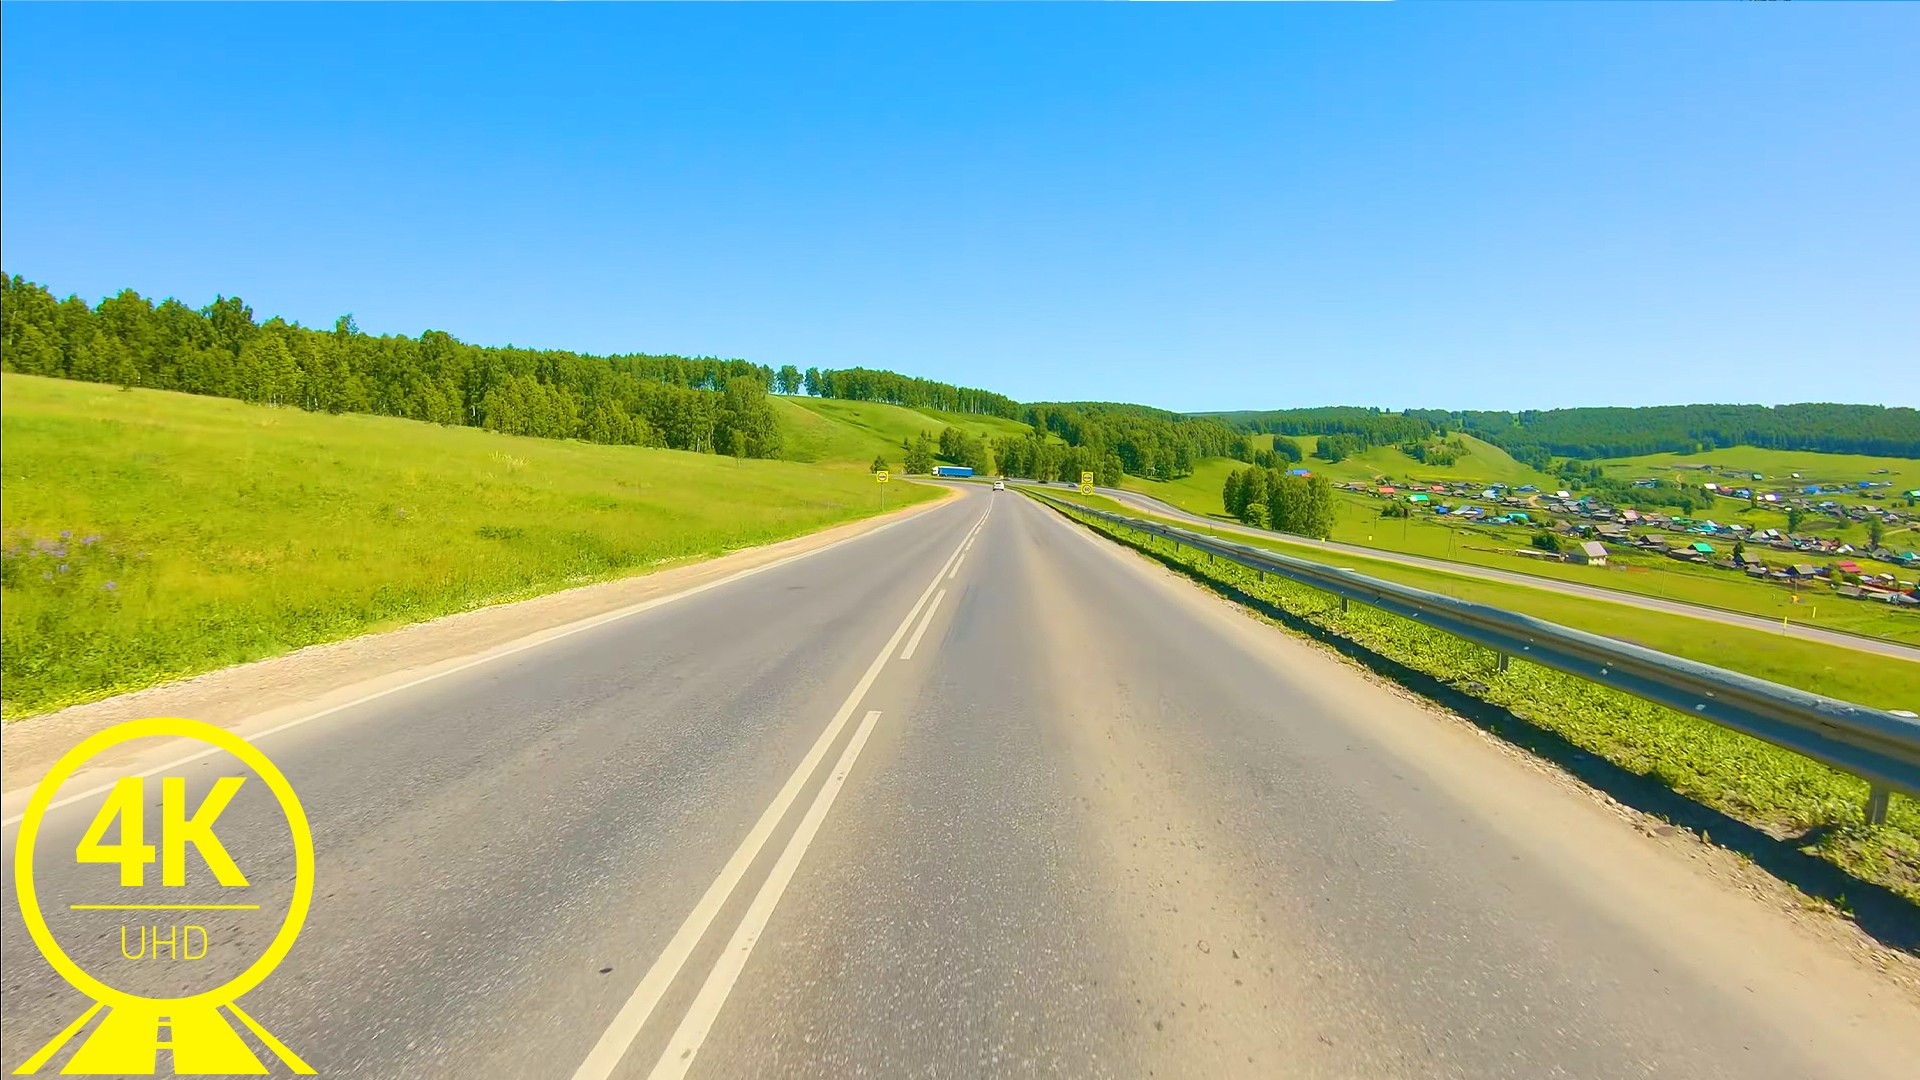 Picturesque roads of South Ural Part 4